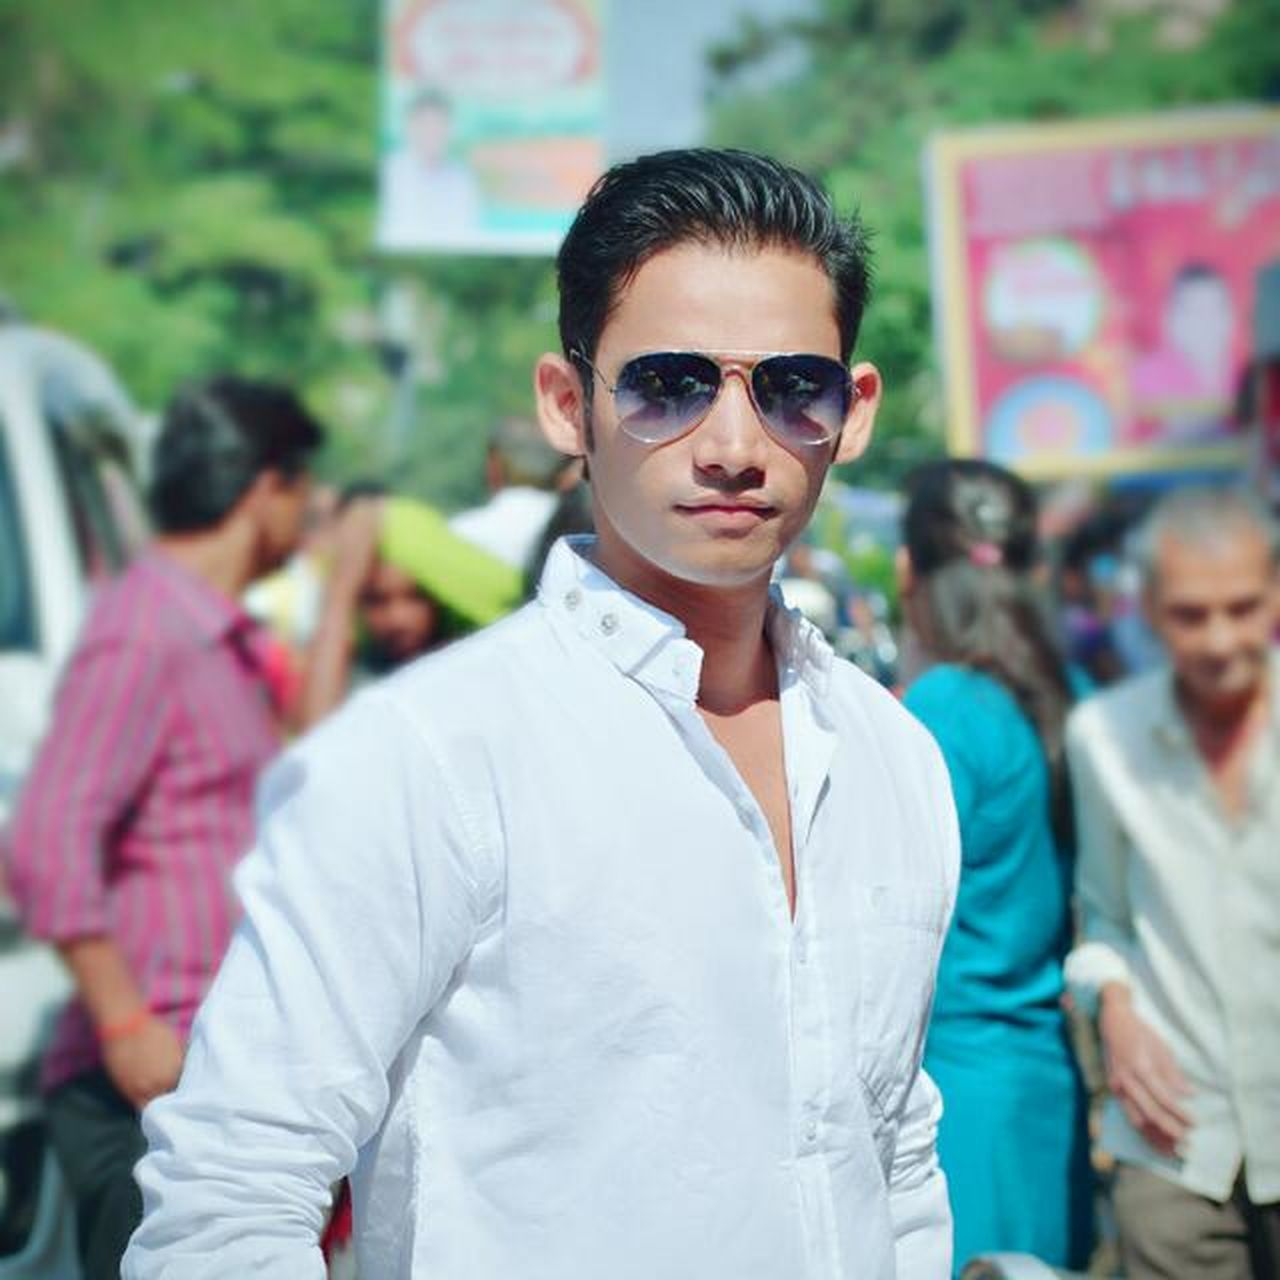 sunglasses, focus on foreground, portrait, looking at camera, young adult, young men, fashion, outdoors, day, standing, people, boys, one person, young women, adult, close-up